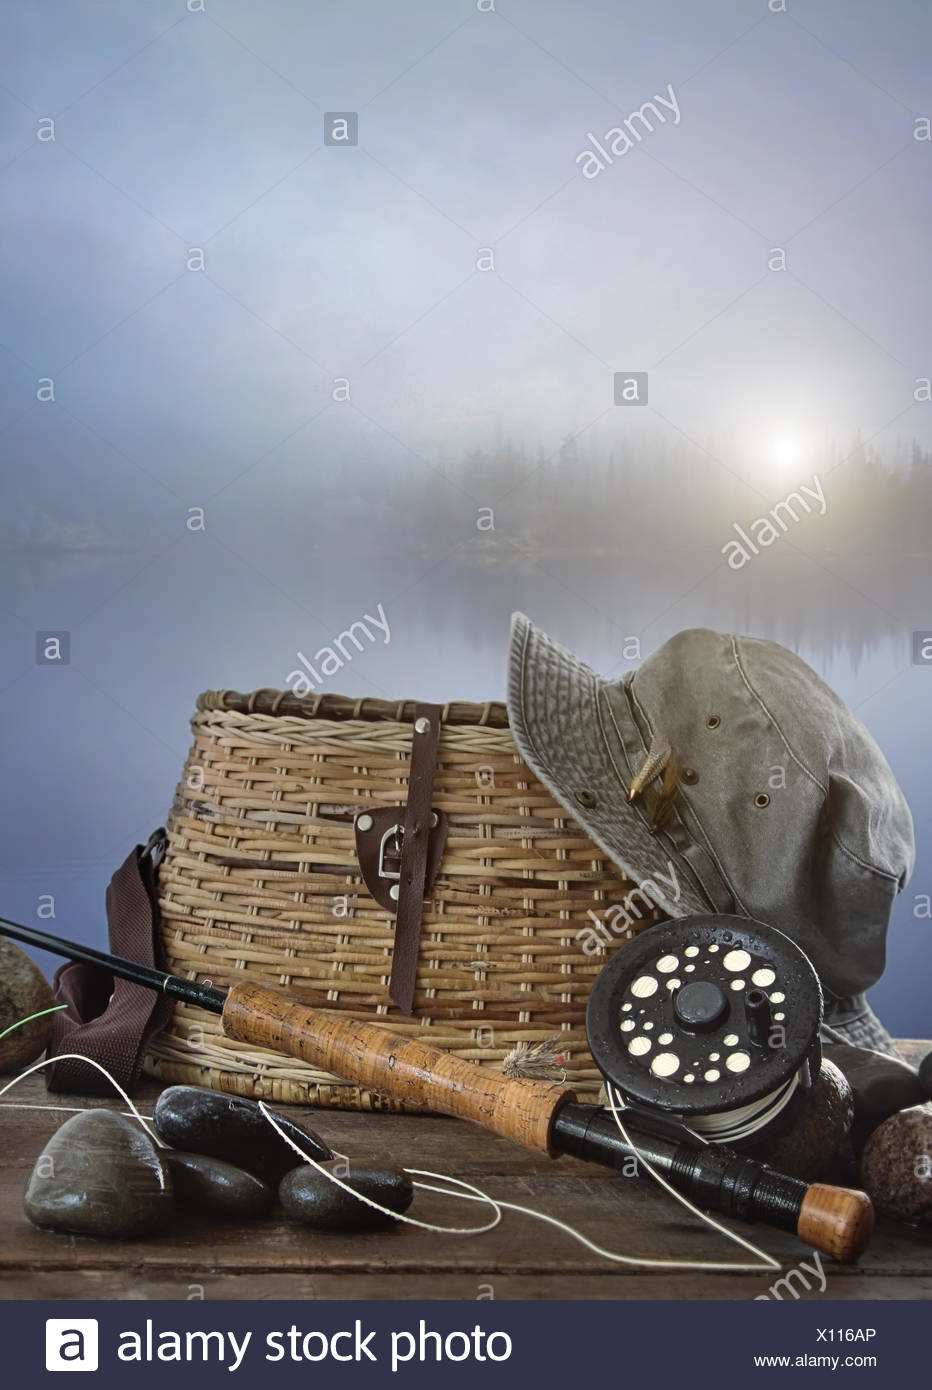 Fly rod with creel and equipment on wood table Stock Photo